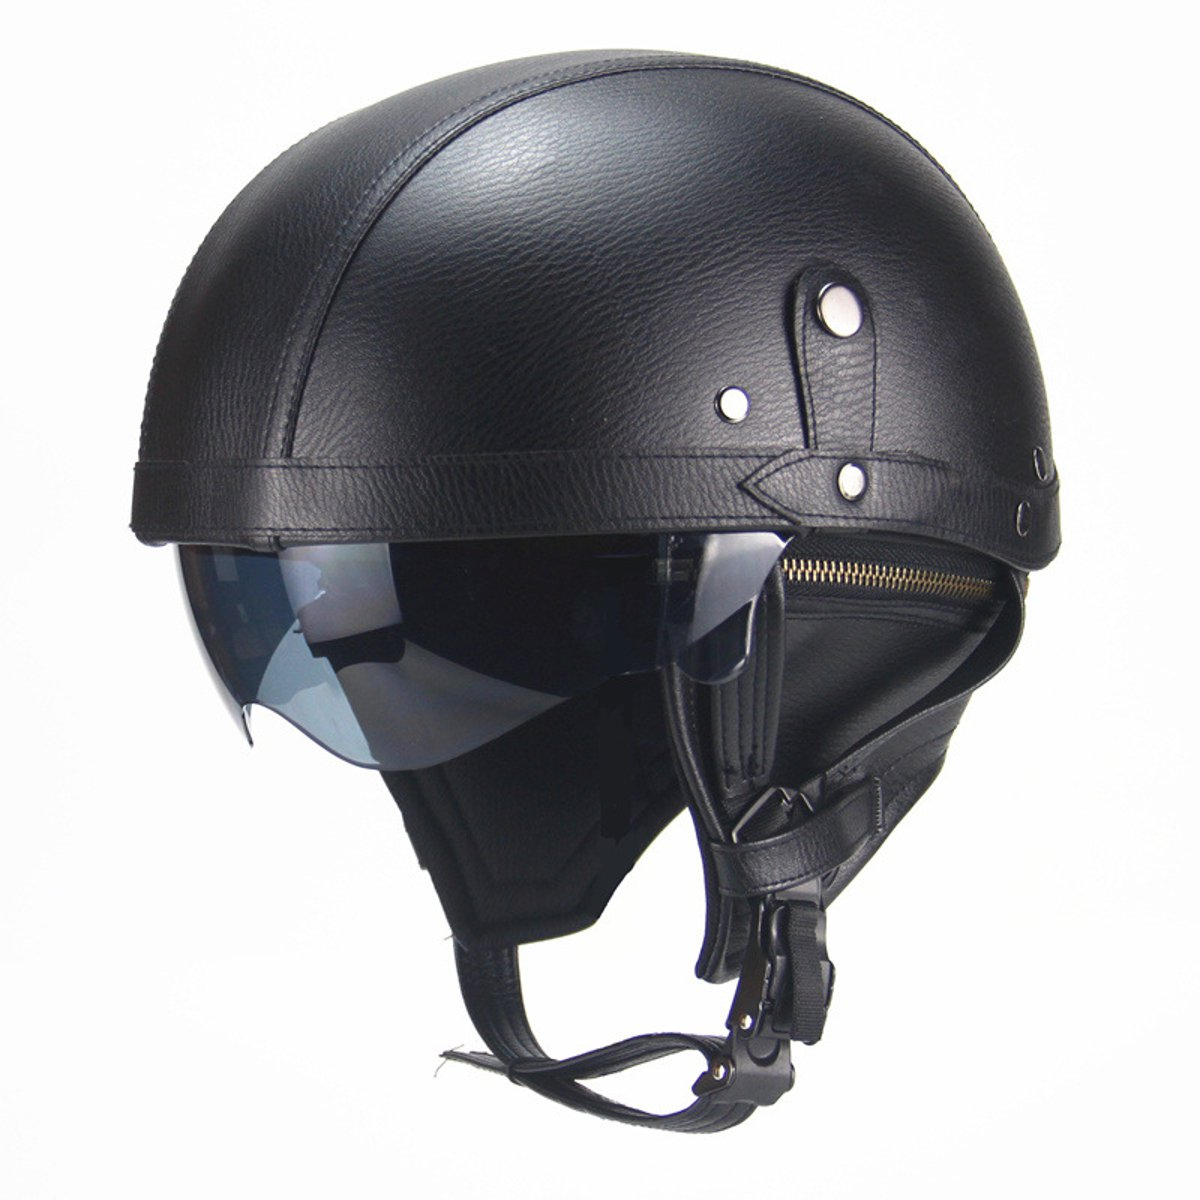 Retro PU Motorcycle Half Helmet Open Face With Visor Motorbike Scooter Cruise Safety